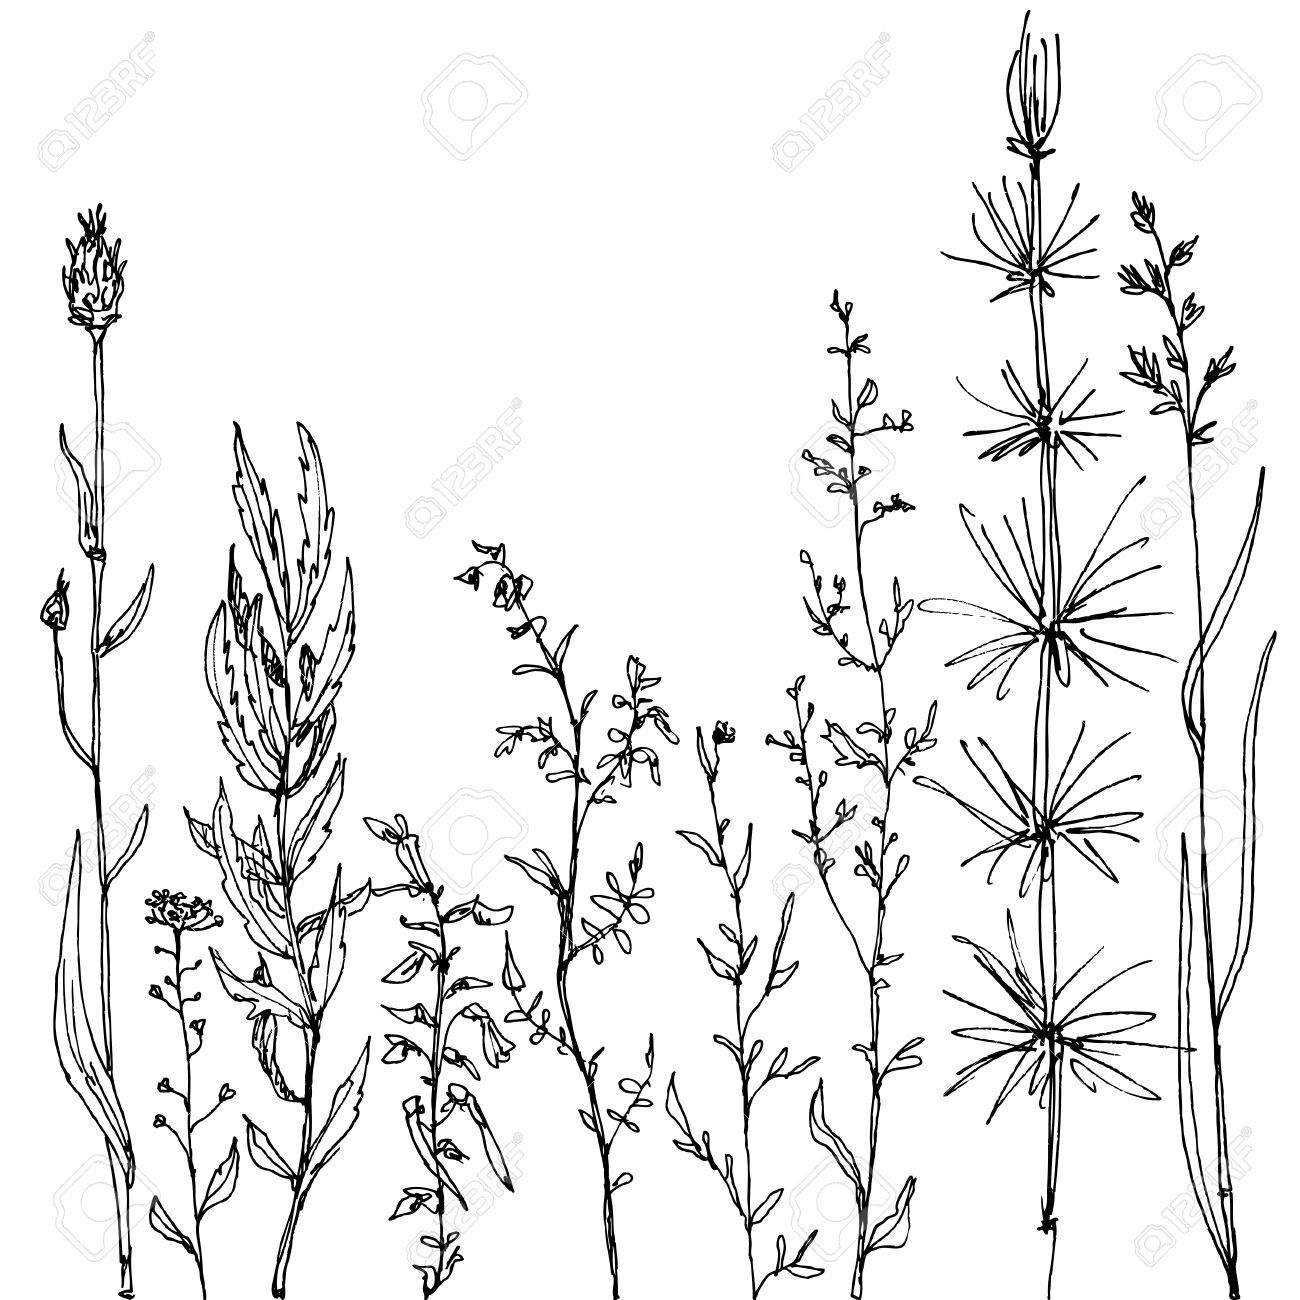 wild flower: floral composition with ink drawing herbs and